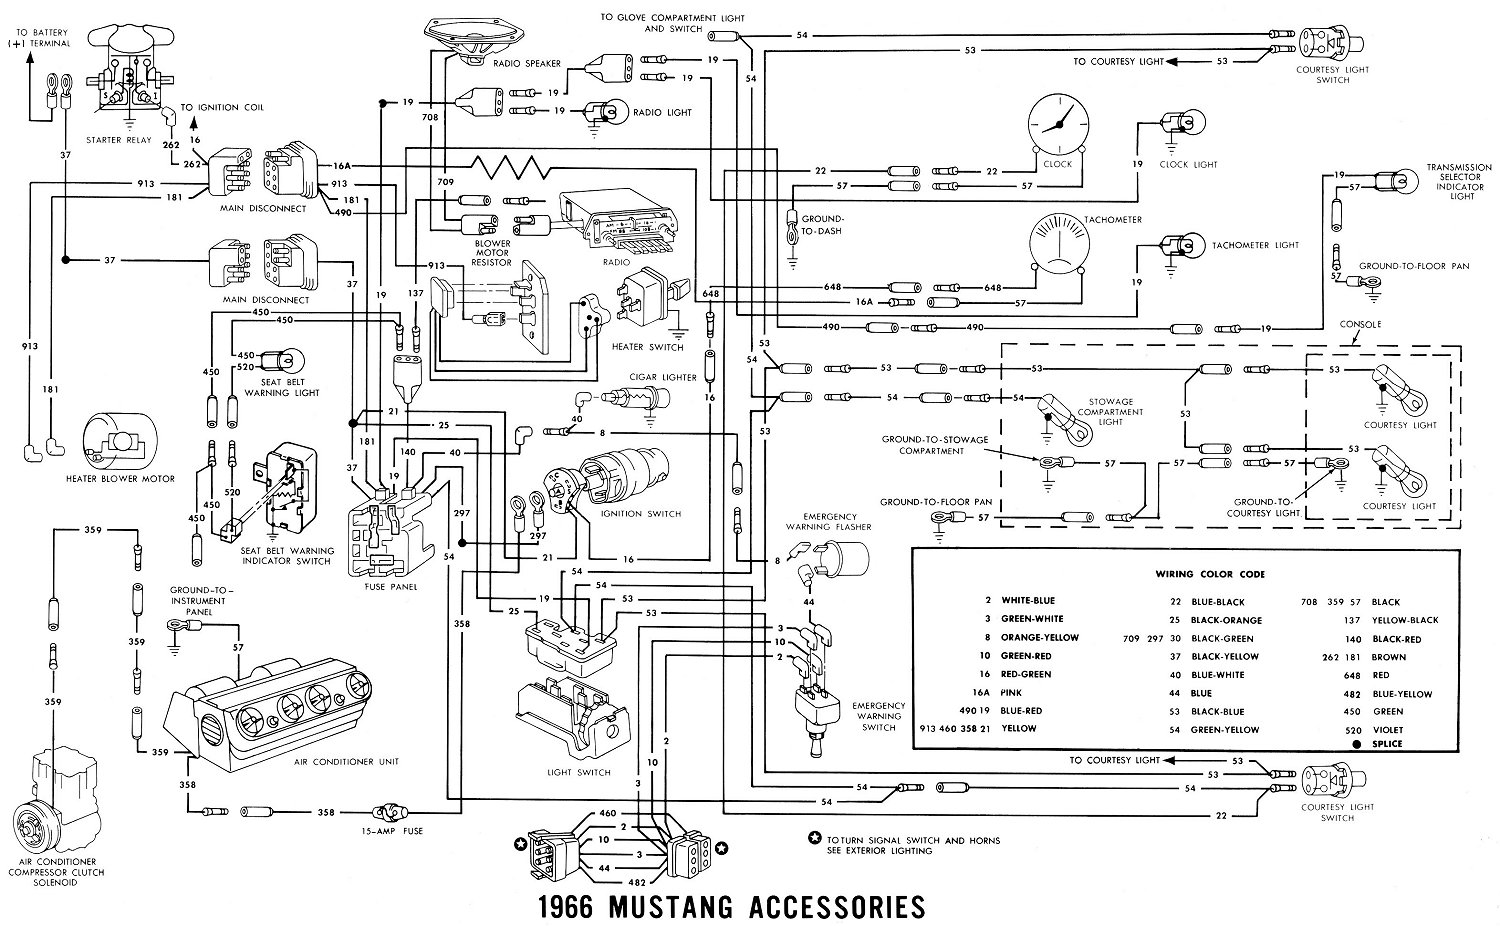 Electrical Schematic Fuse Box Diagram Circuit Wiring And Hub 60 Amp 1966 Mustang 66 Rh Hg4 Co Old